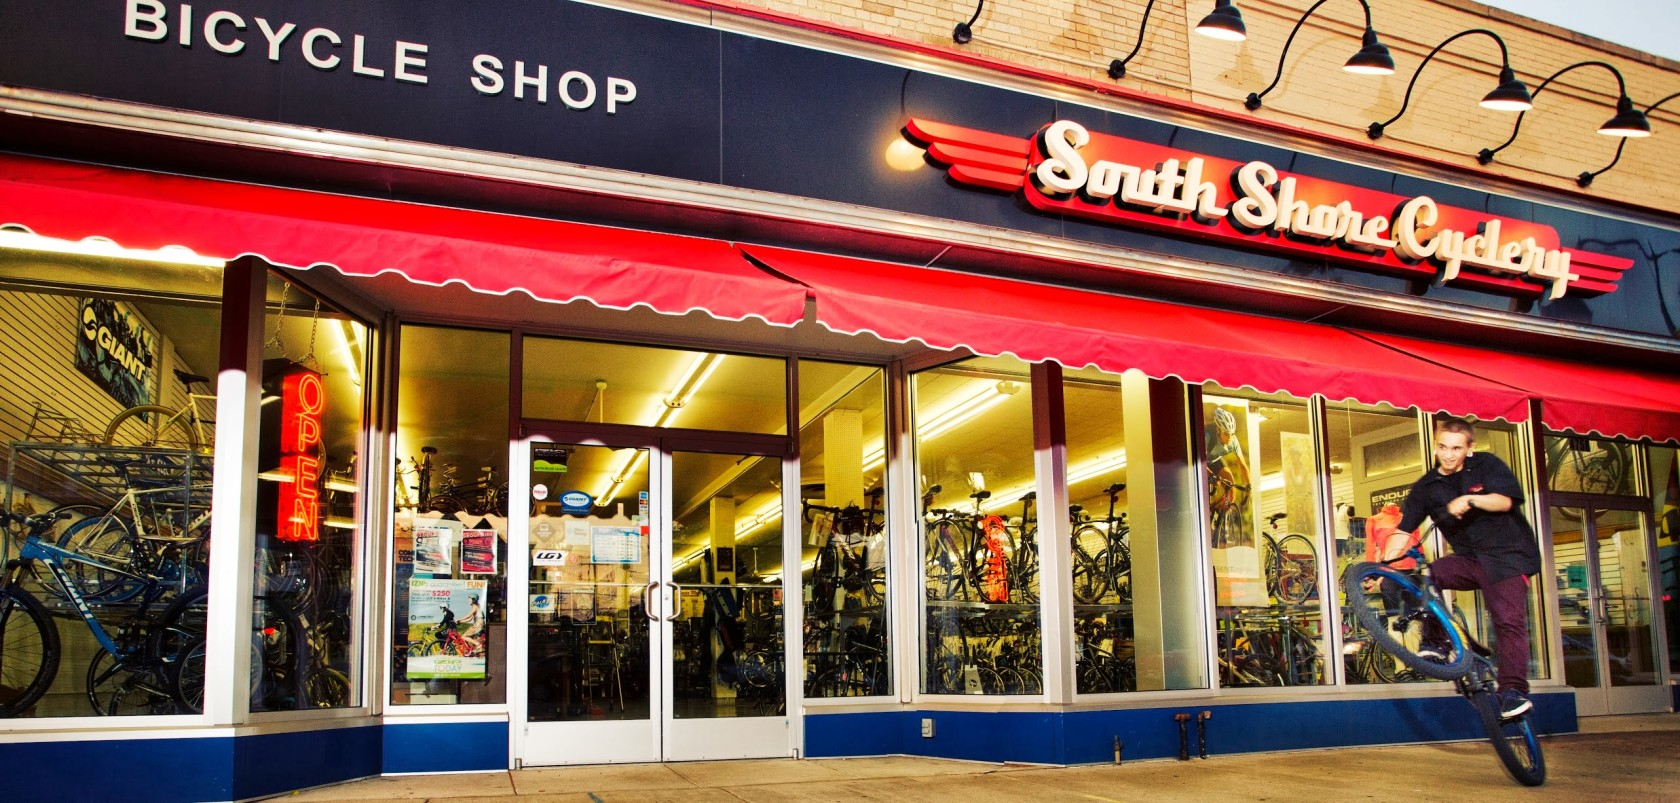 SouthShore-Cyclery-COLOR-e1393722905202